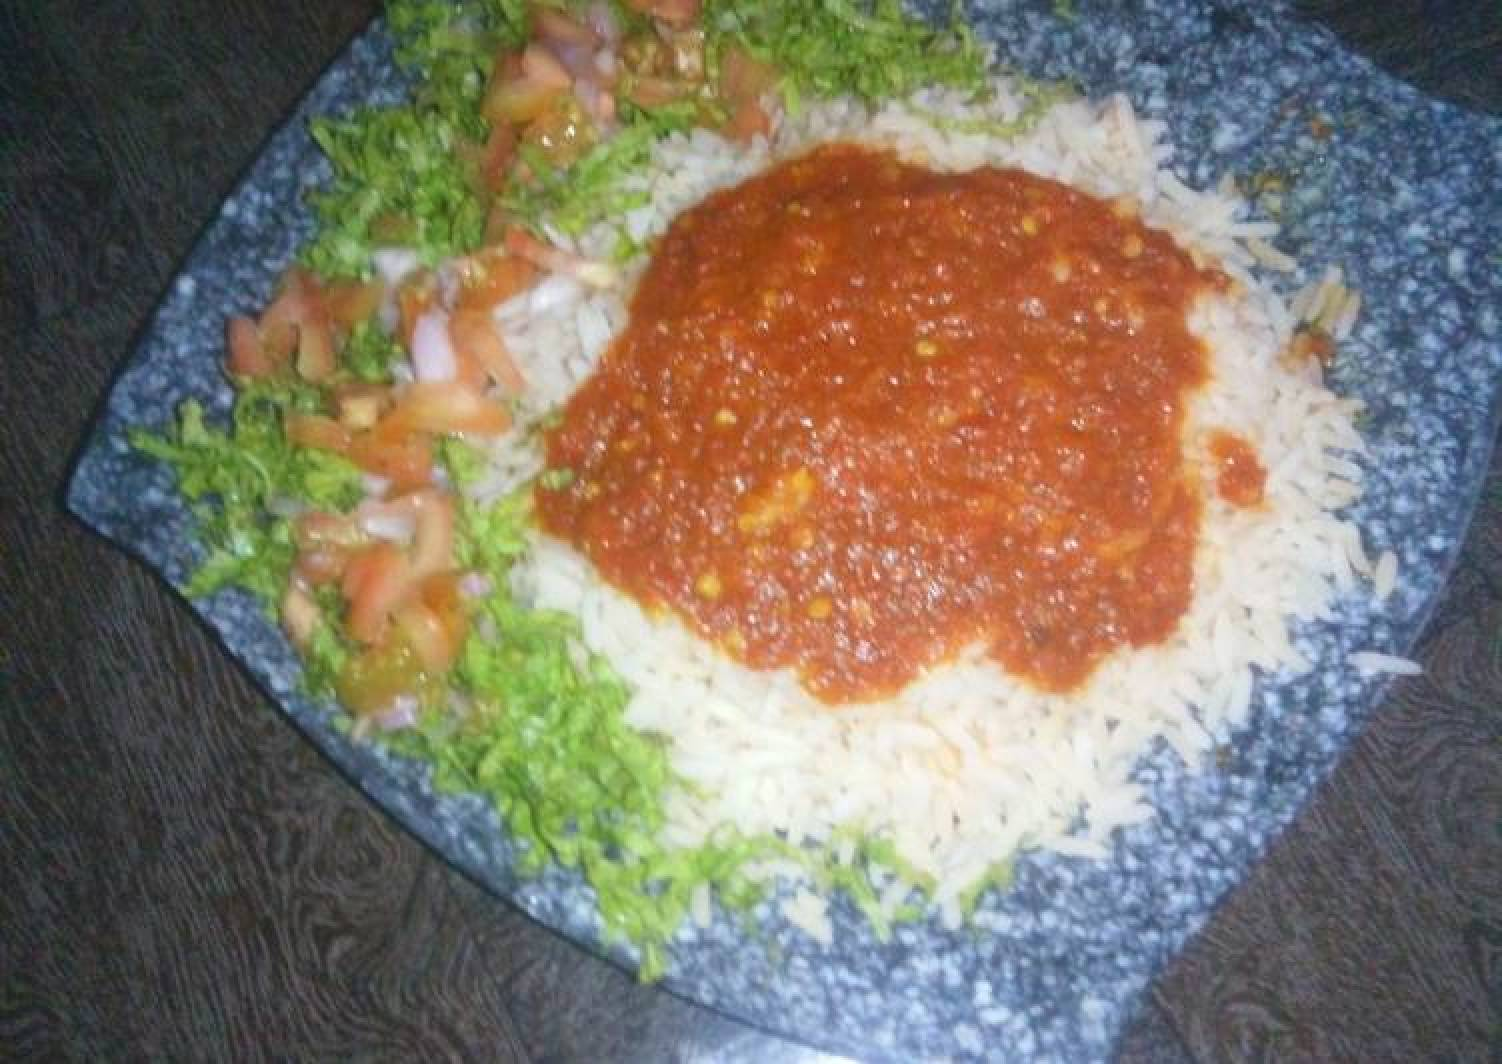 Rice and stew with lettuce salad